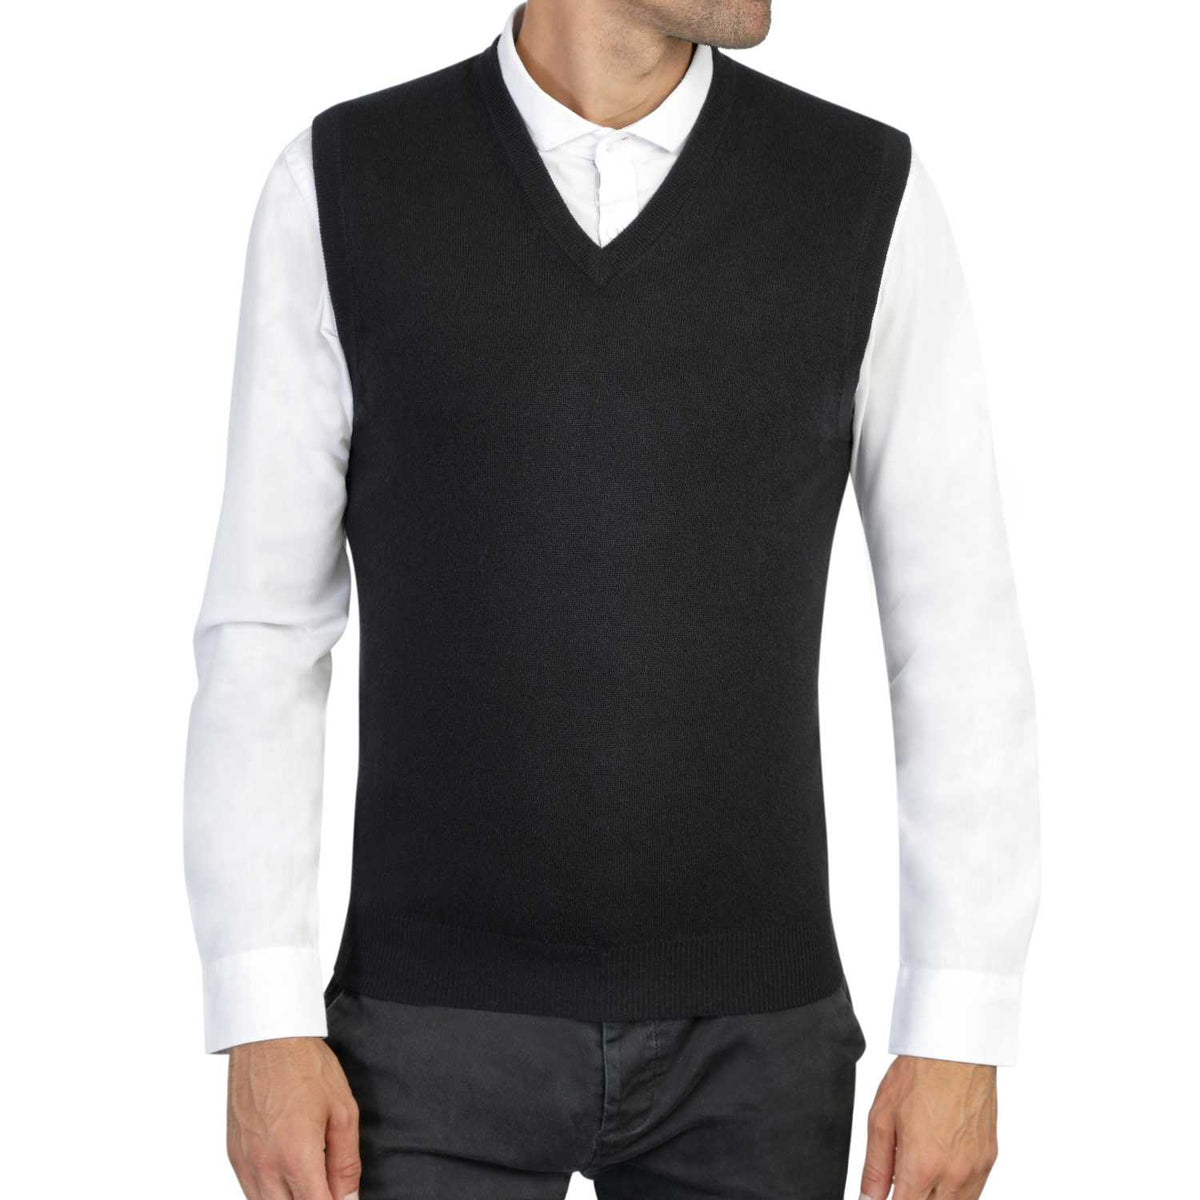 Mens Black Cashmere Sleeveless Vest Sweater | Front | Shop at The Cashmere Choice | London